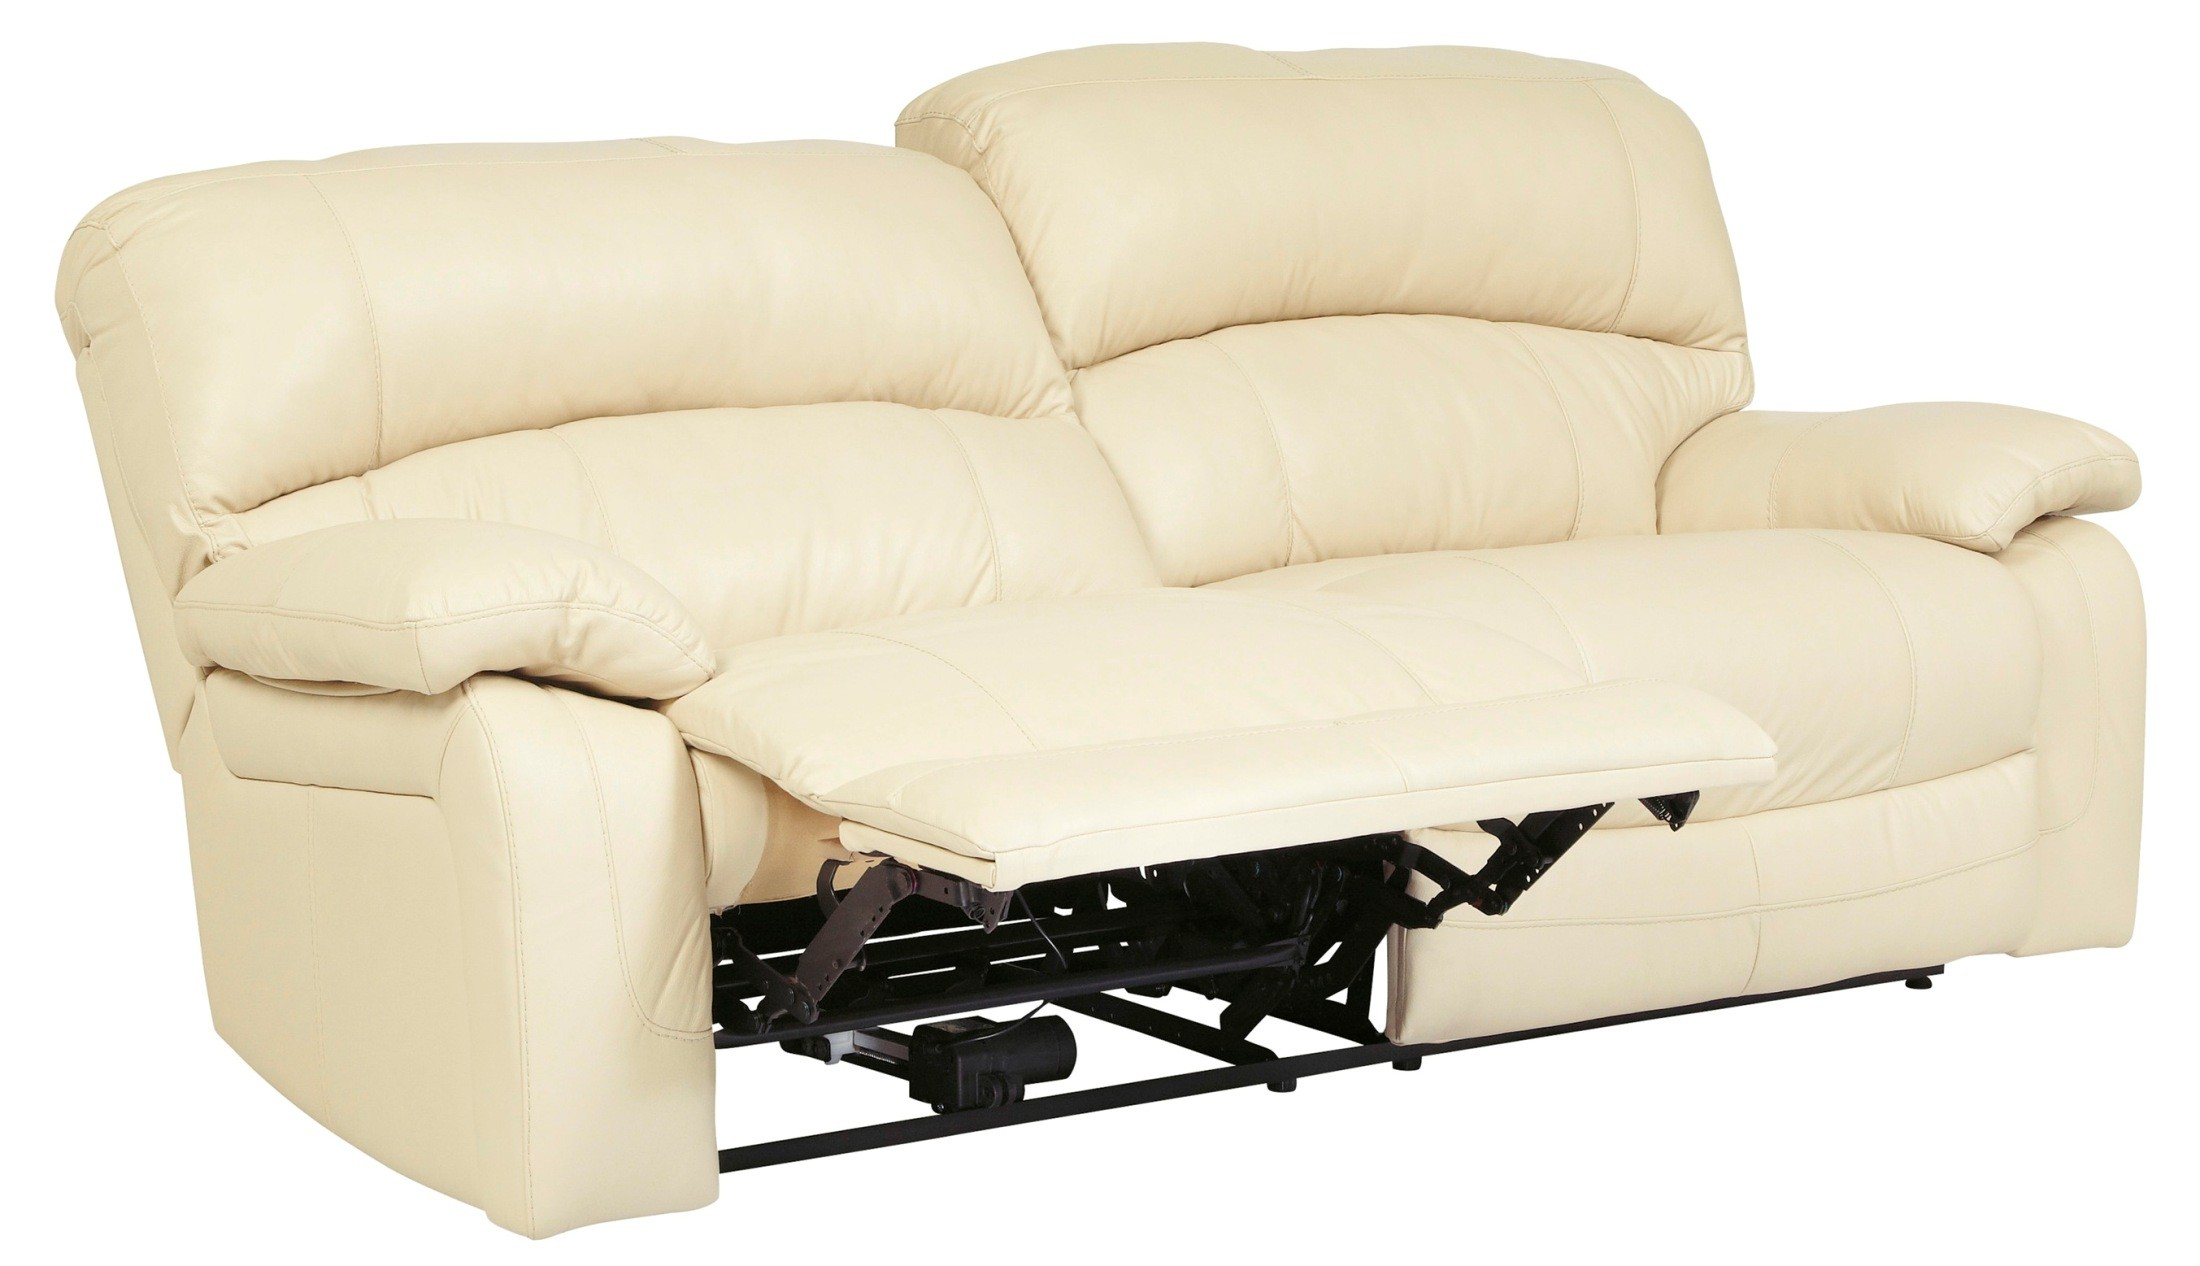 Damacio Cream 2 Seat Power Reclining Sofa From Ashley